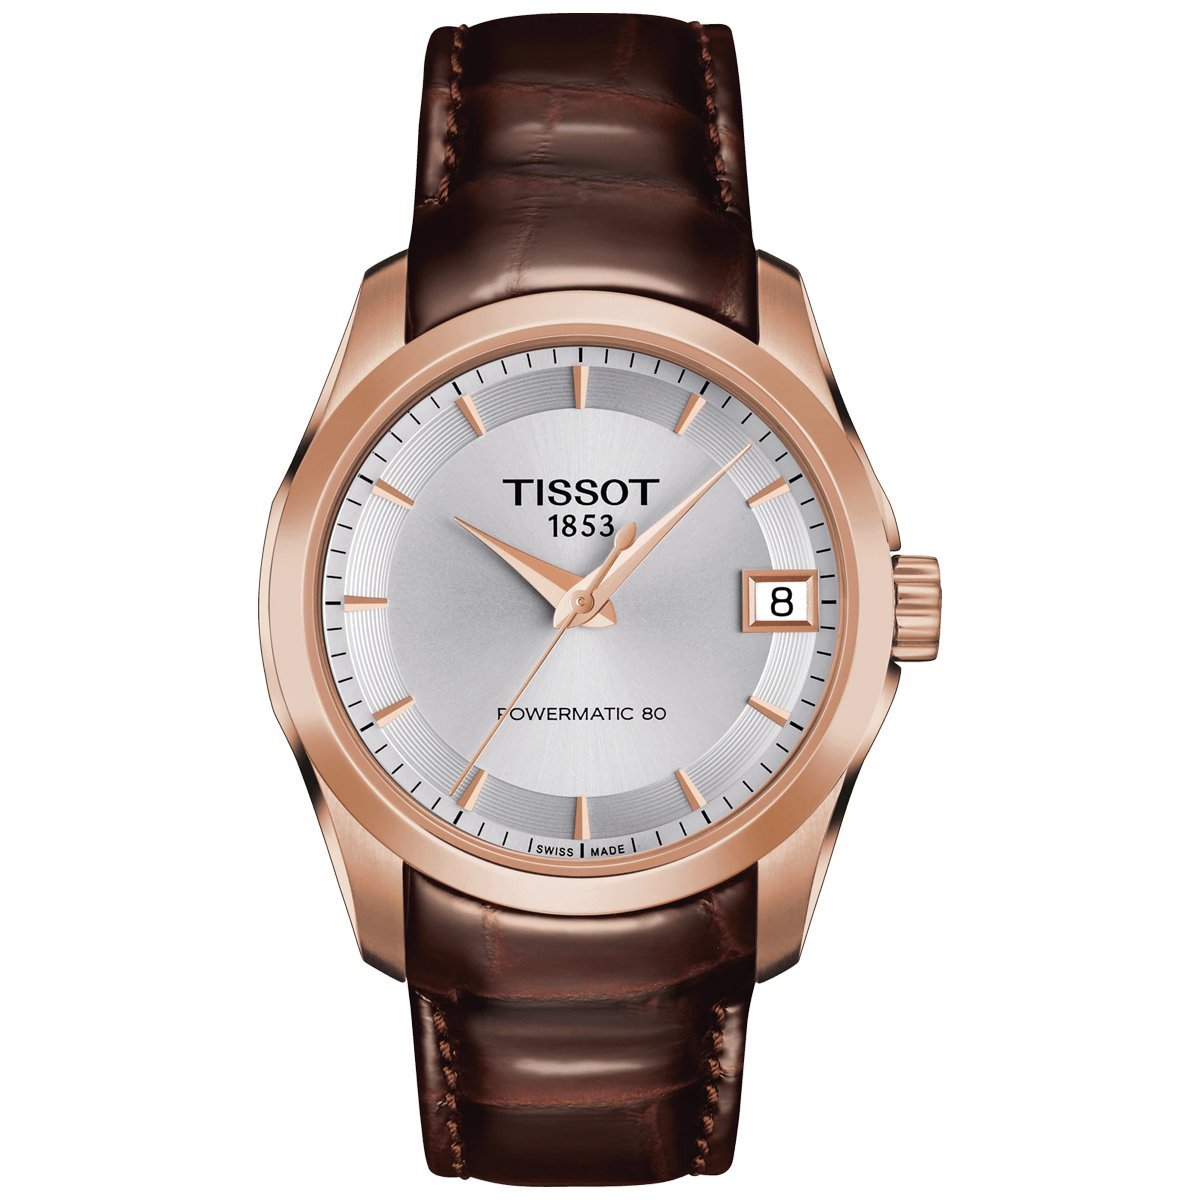 Tissot T-Classic Couturier Powermatic 80 Date Leather Rose Gold - Watches & Crystals